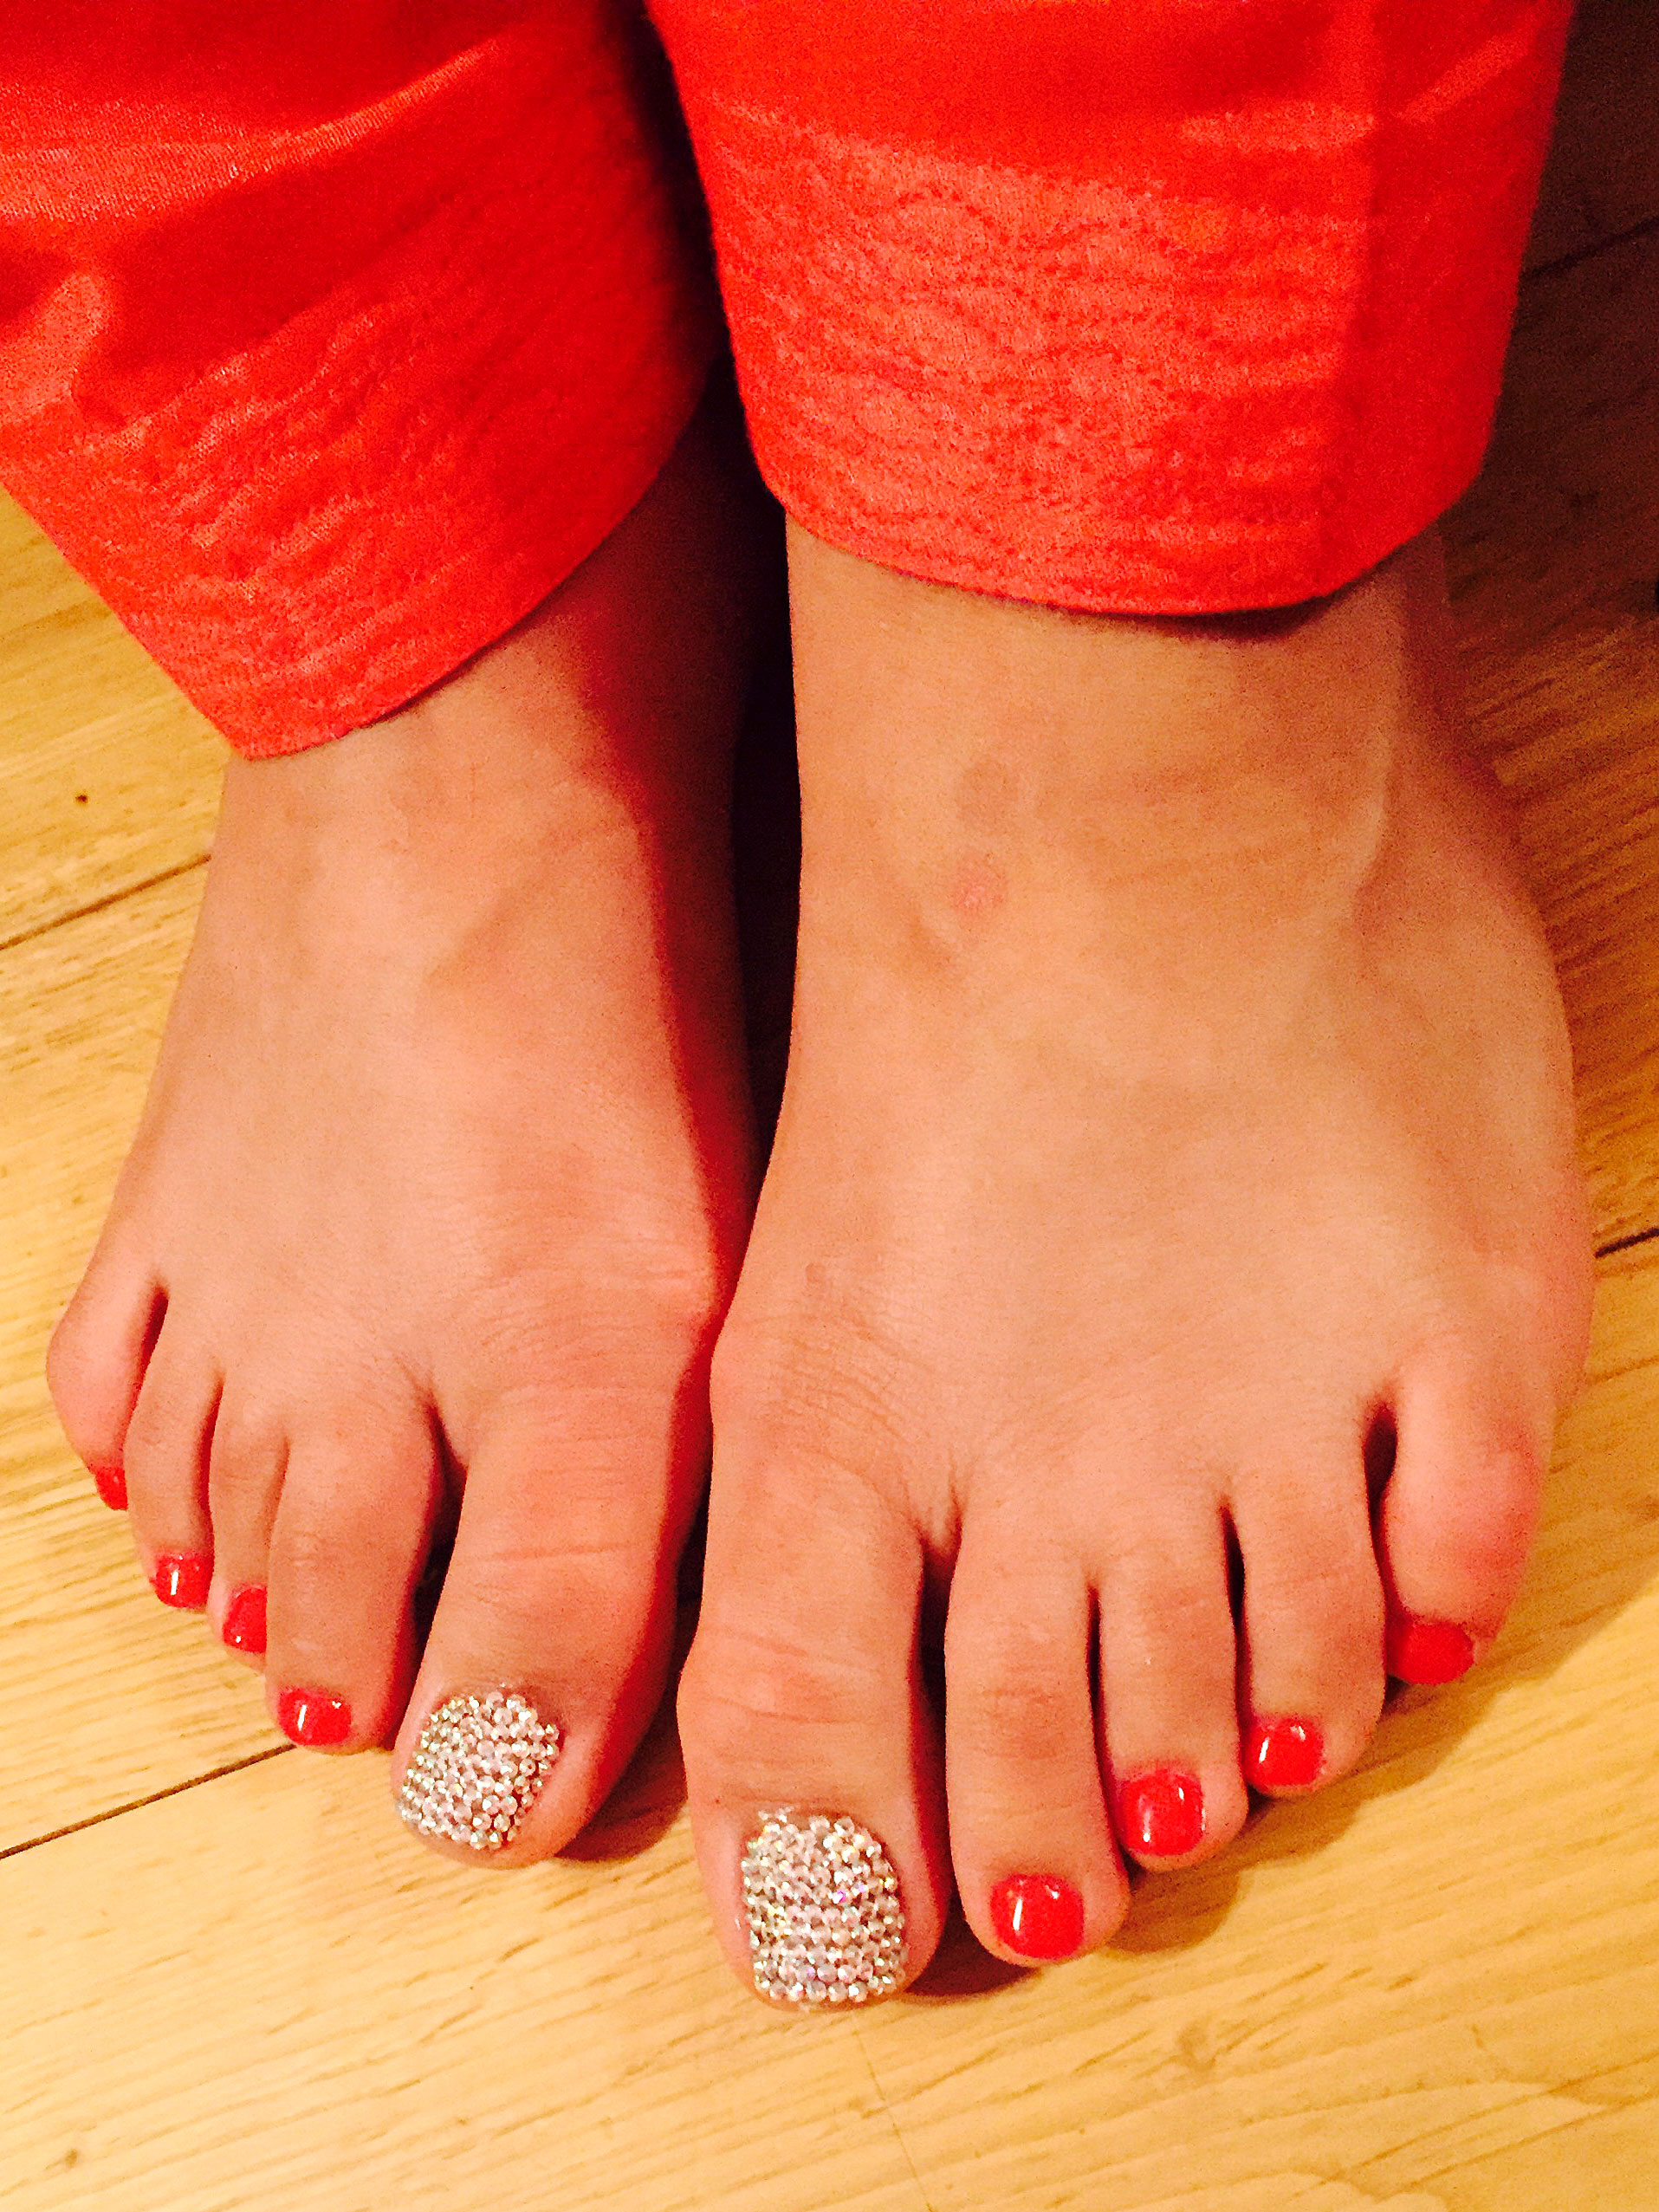 swarovski-crystal-pedicure-beauty-salon-bristol-bonjour-belle.jpg